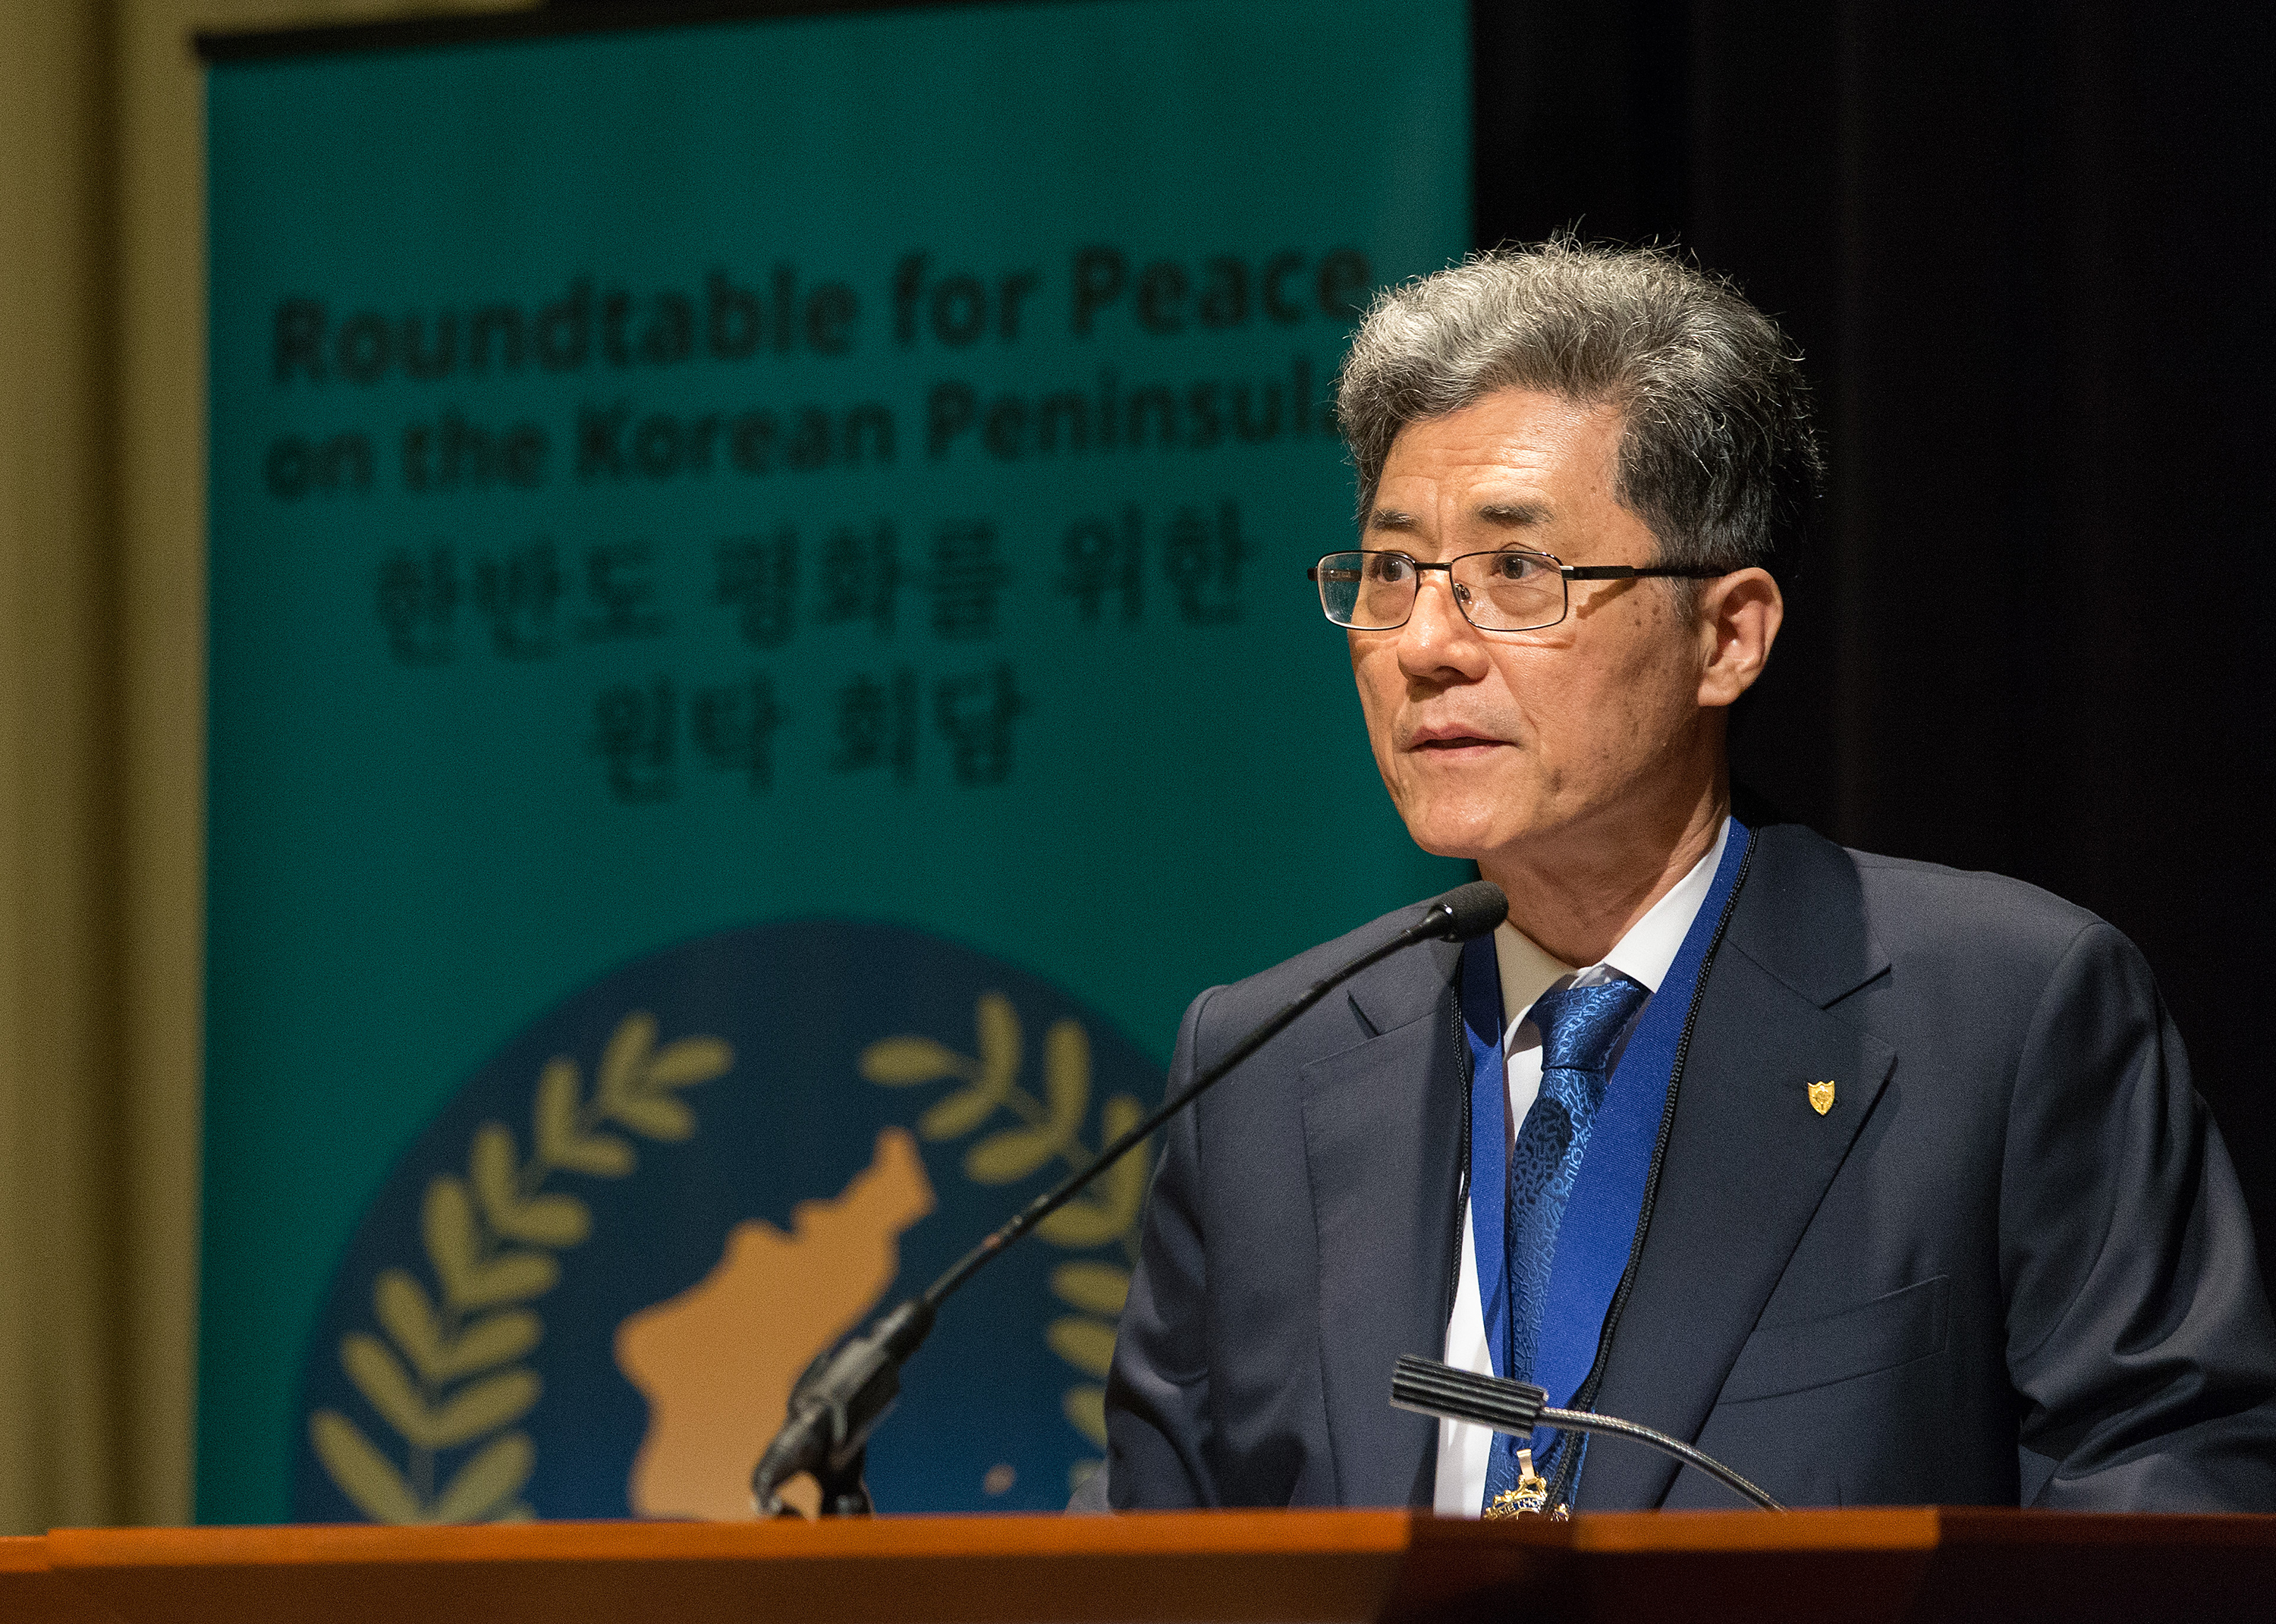 The Rev. Jong Chun Park brings greetings from the World Methodist Council to the Roundtable for Peace on the Korean Peninsula meeting in Atlanta. Photo by Mike DuBose, UMNS.